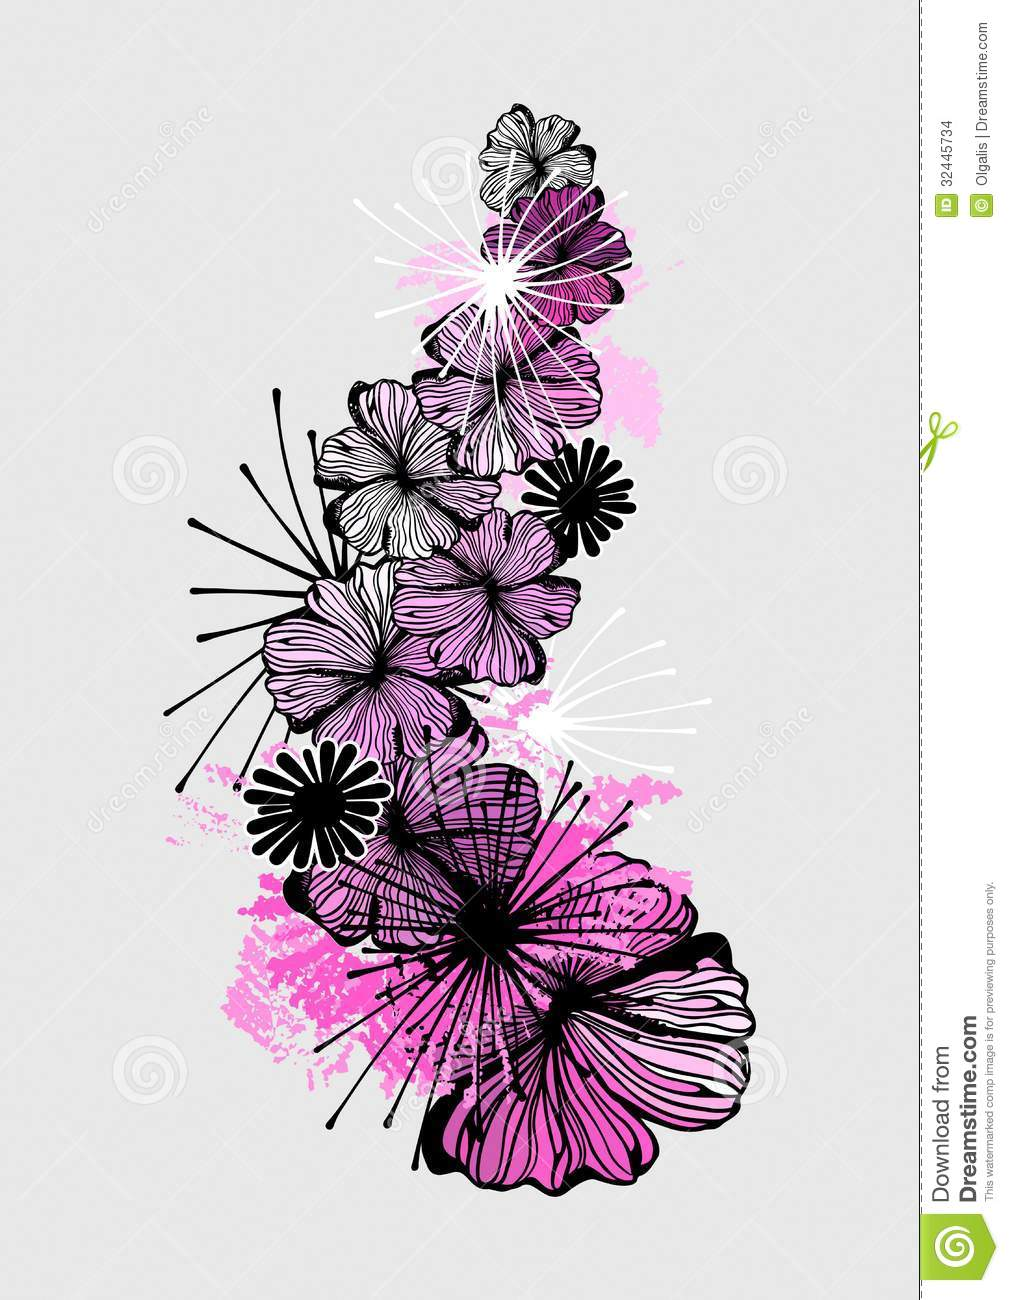 Doodle Flower Ink Pattern Model For Design Of Gift Packs Patterns